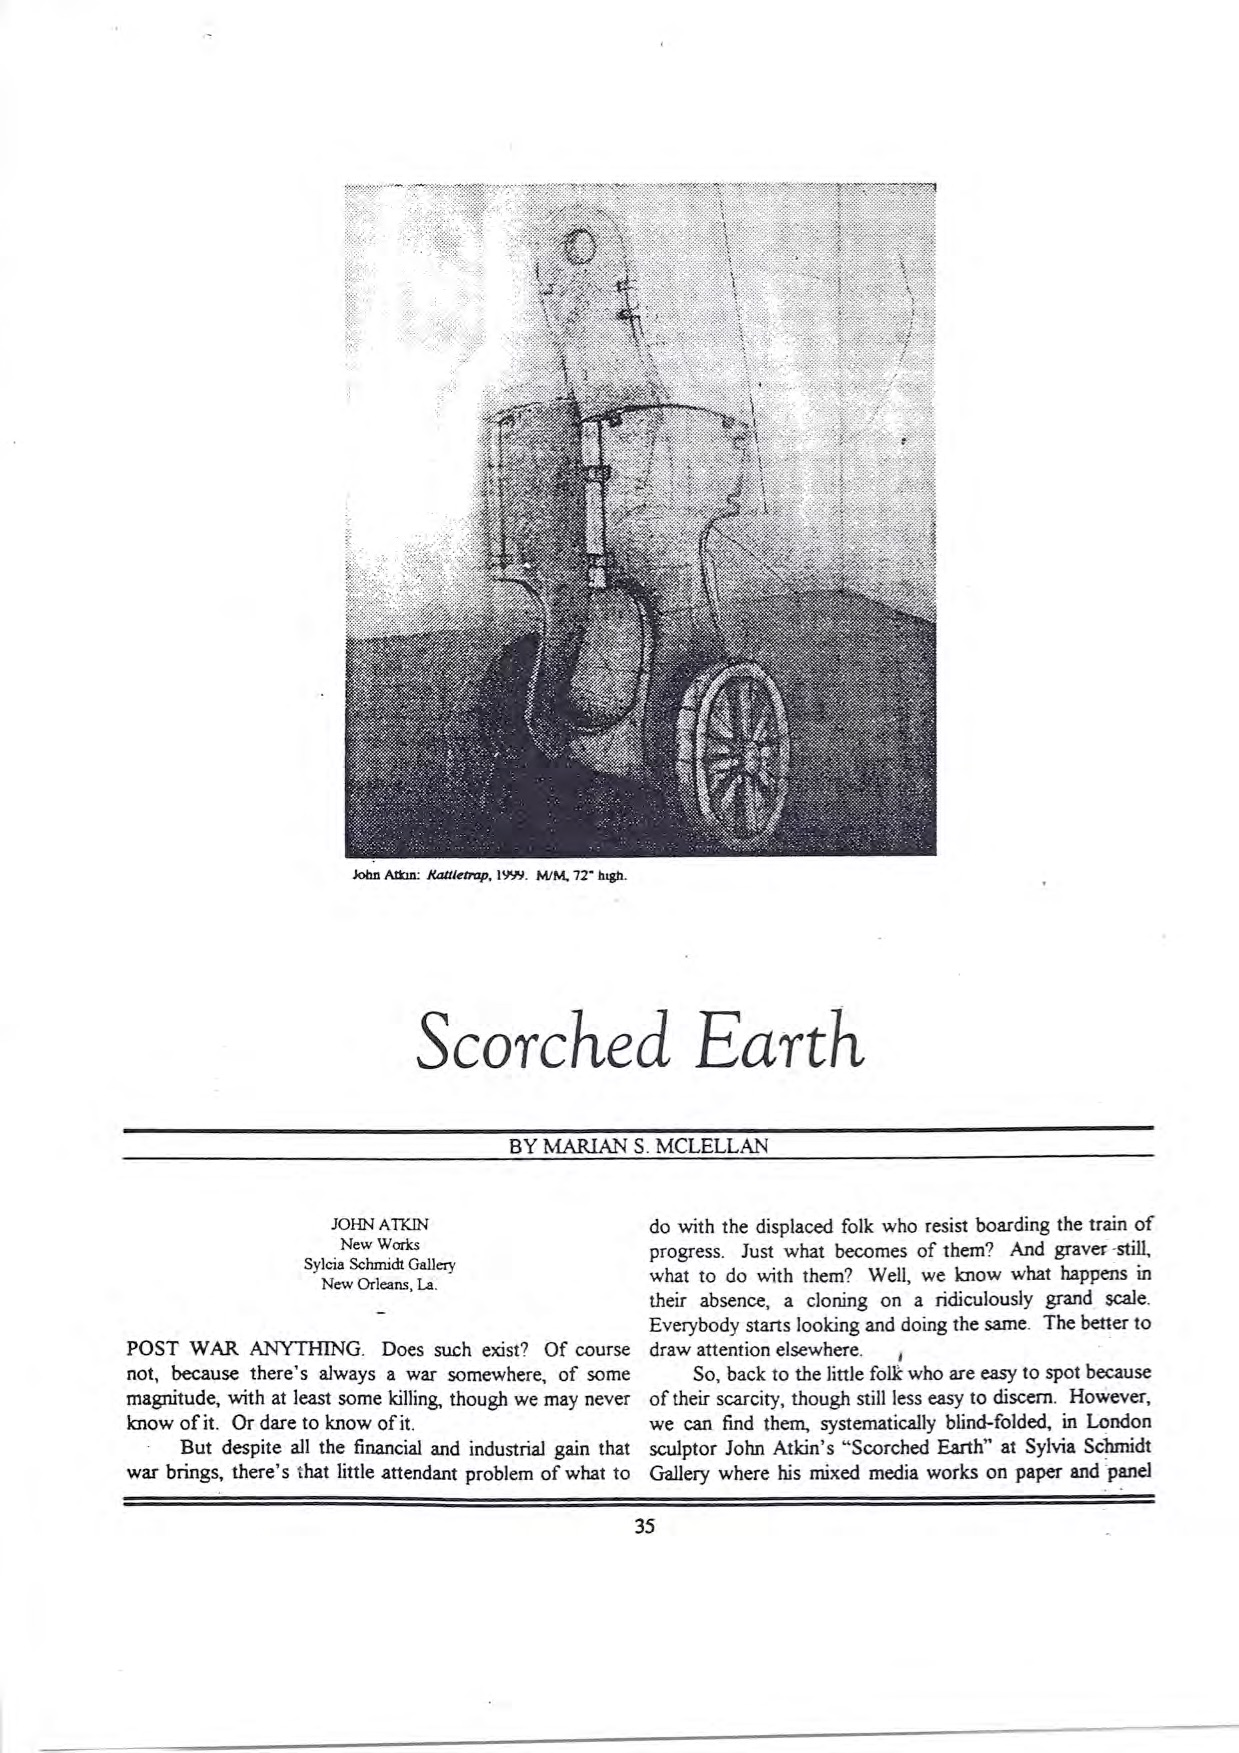 17.scorched earth review_New Orleans_USA.jpg